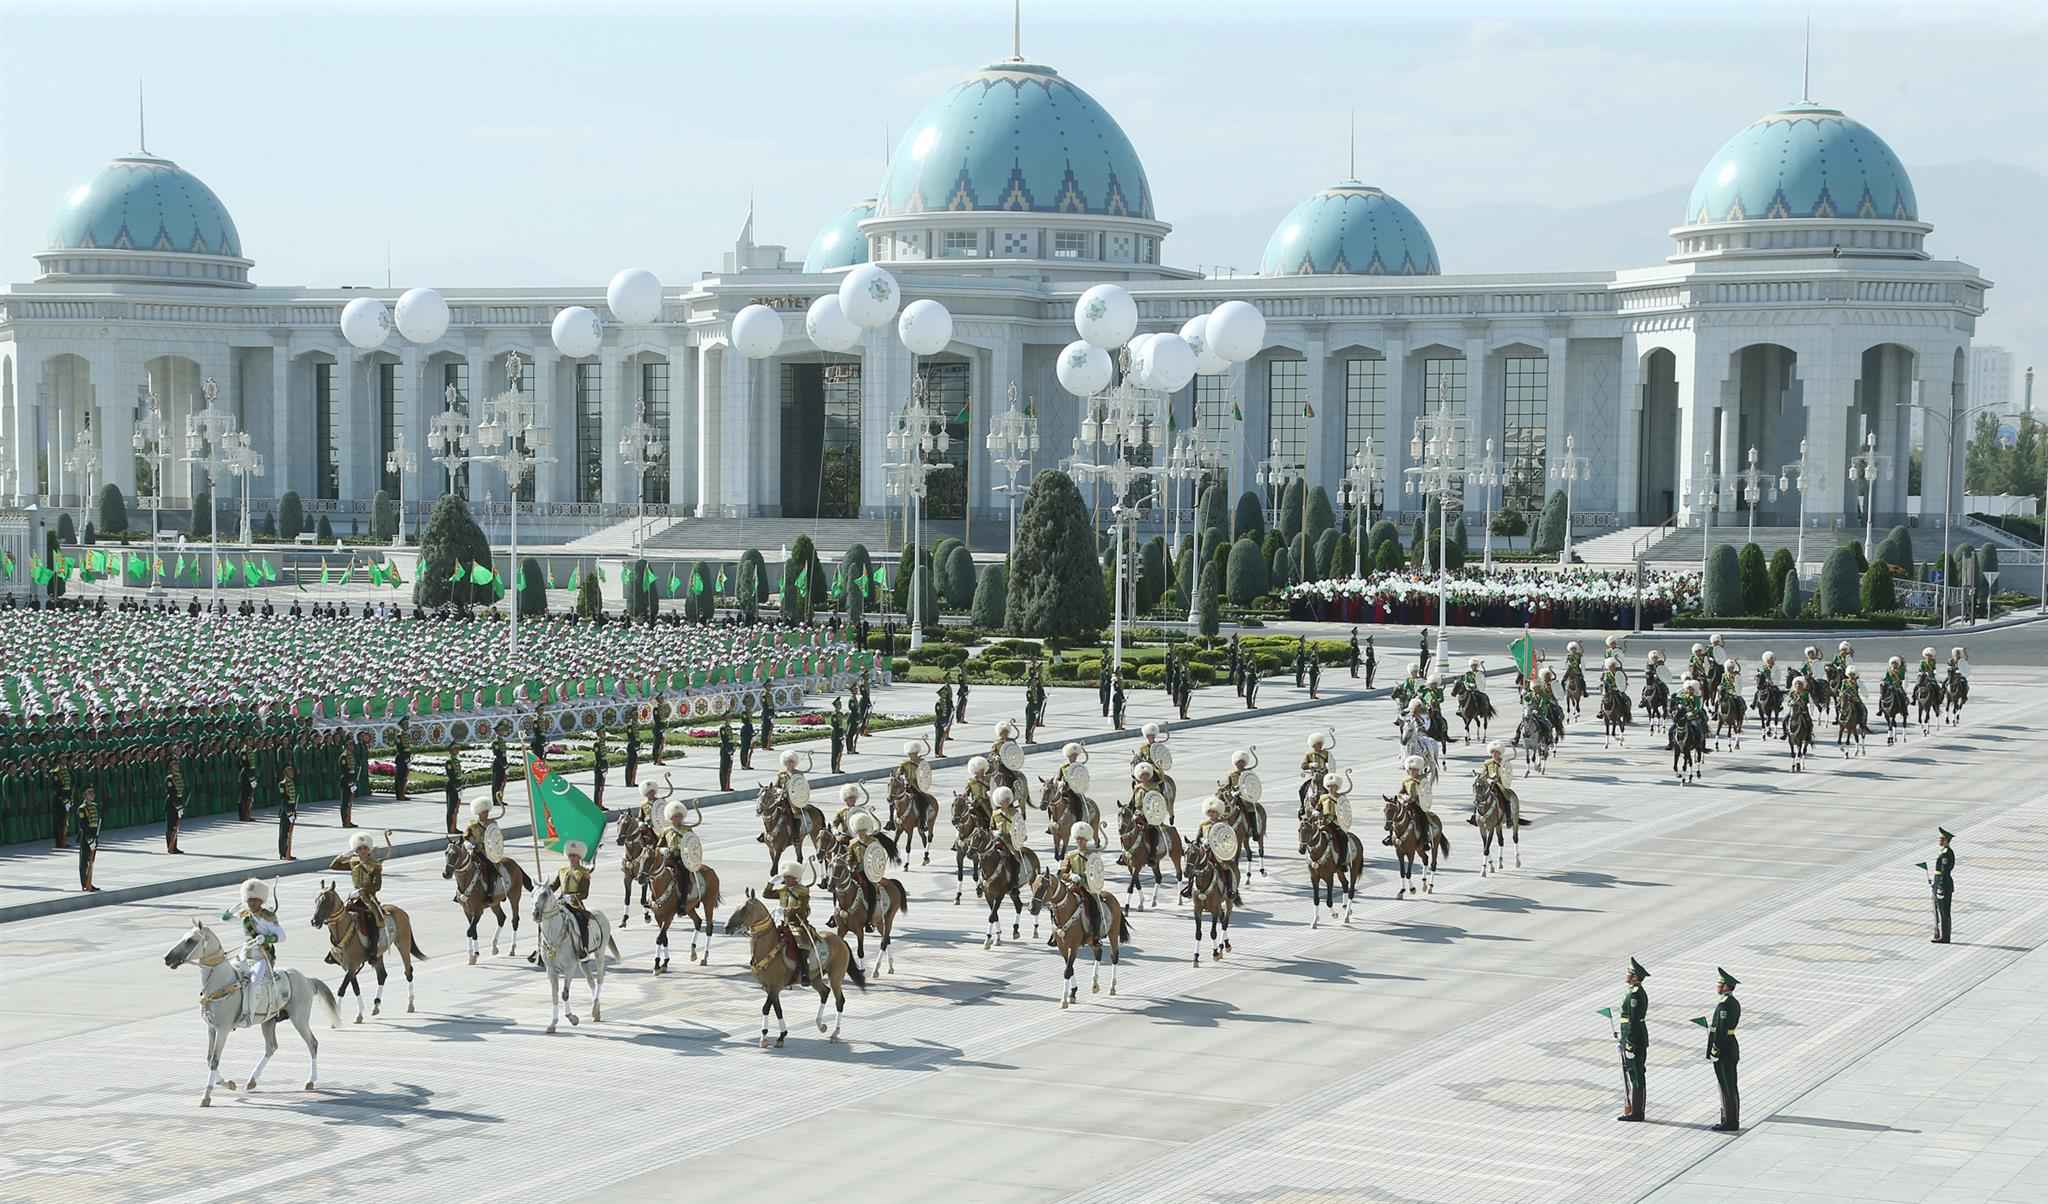 17d76d2416c693e8951b84898df3a8e9 - In Turkmenistan fined for drones and pay for slain dogs — media review